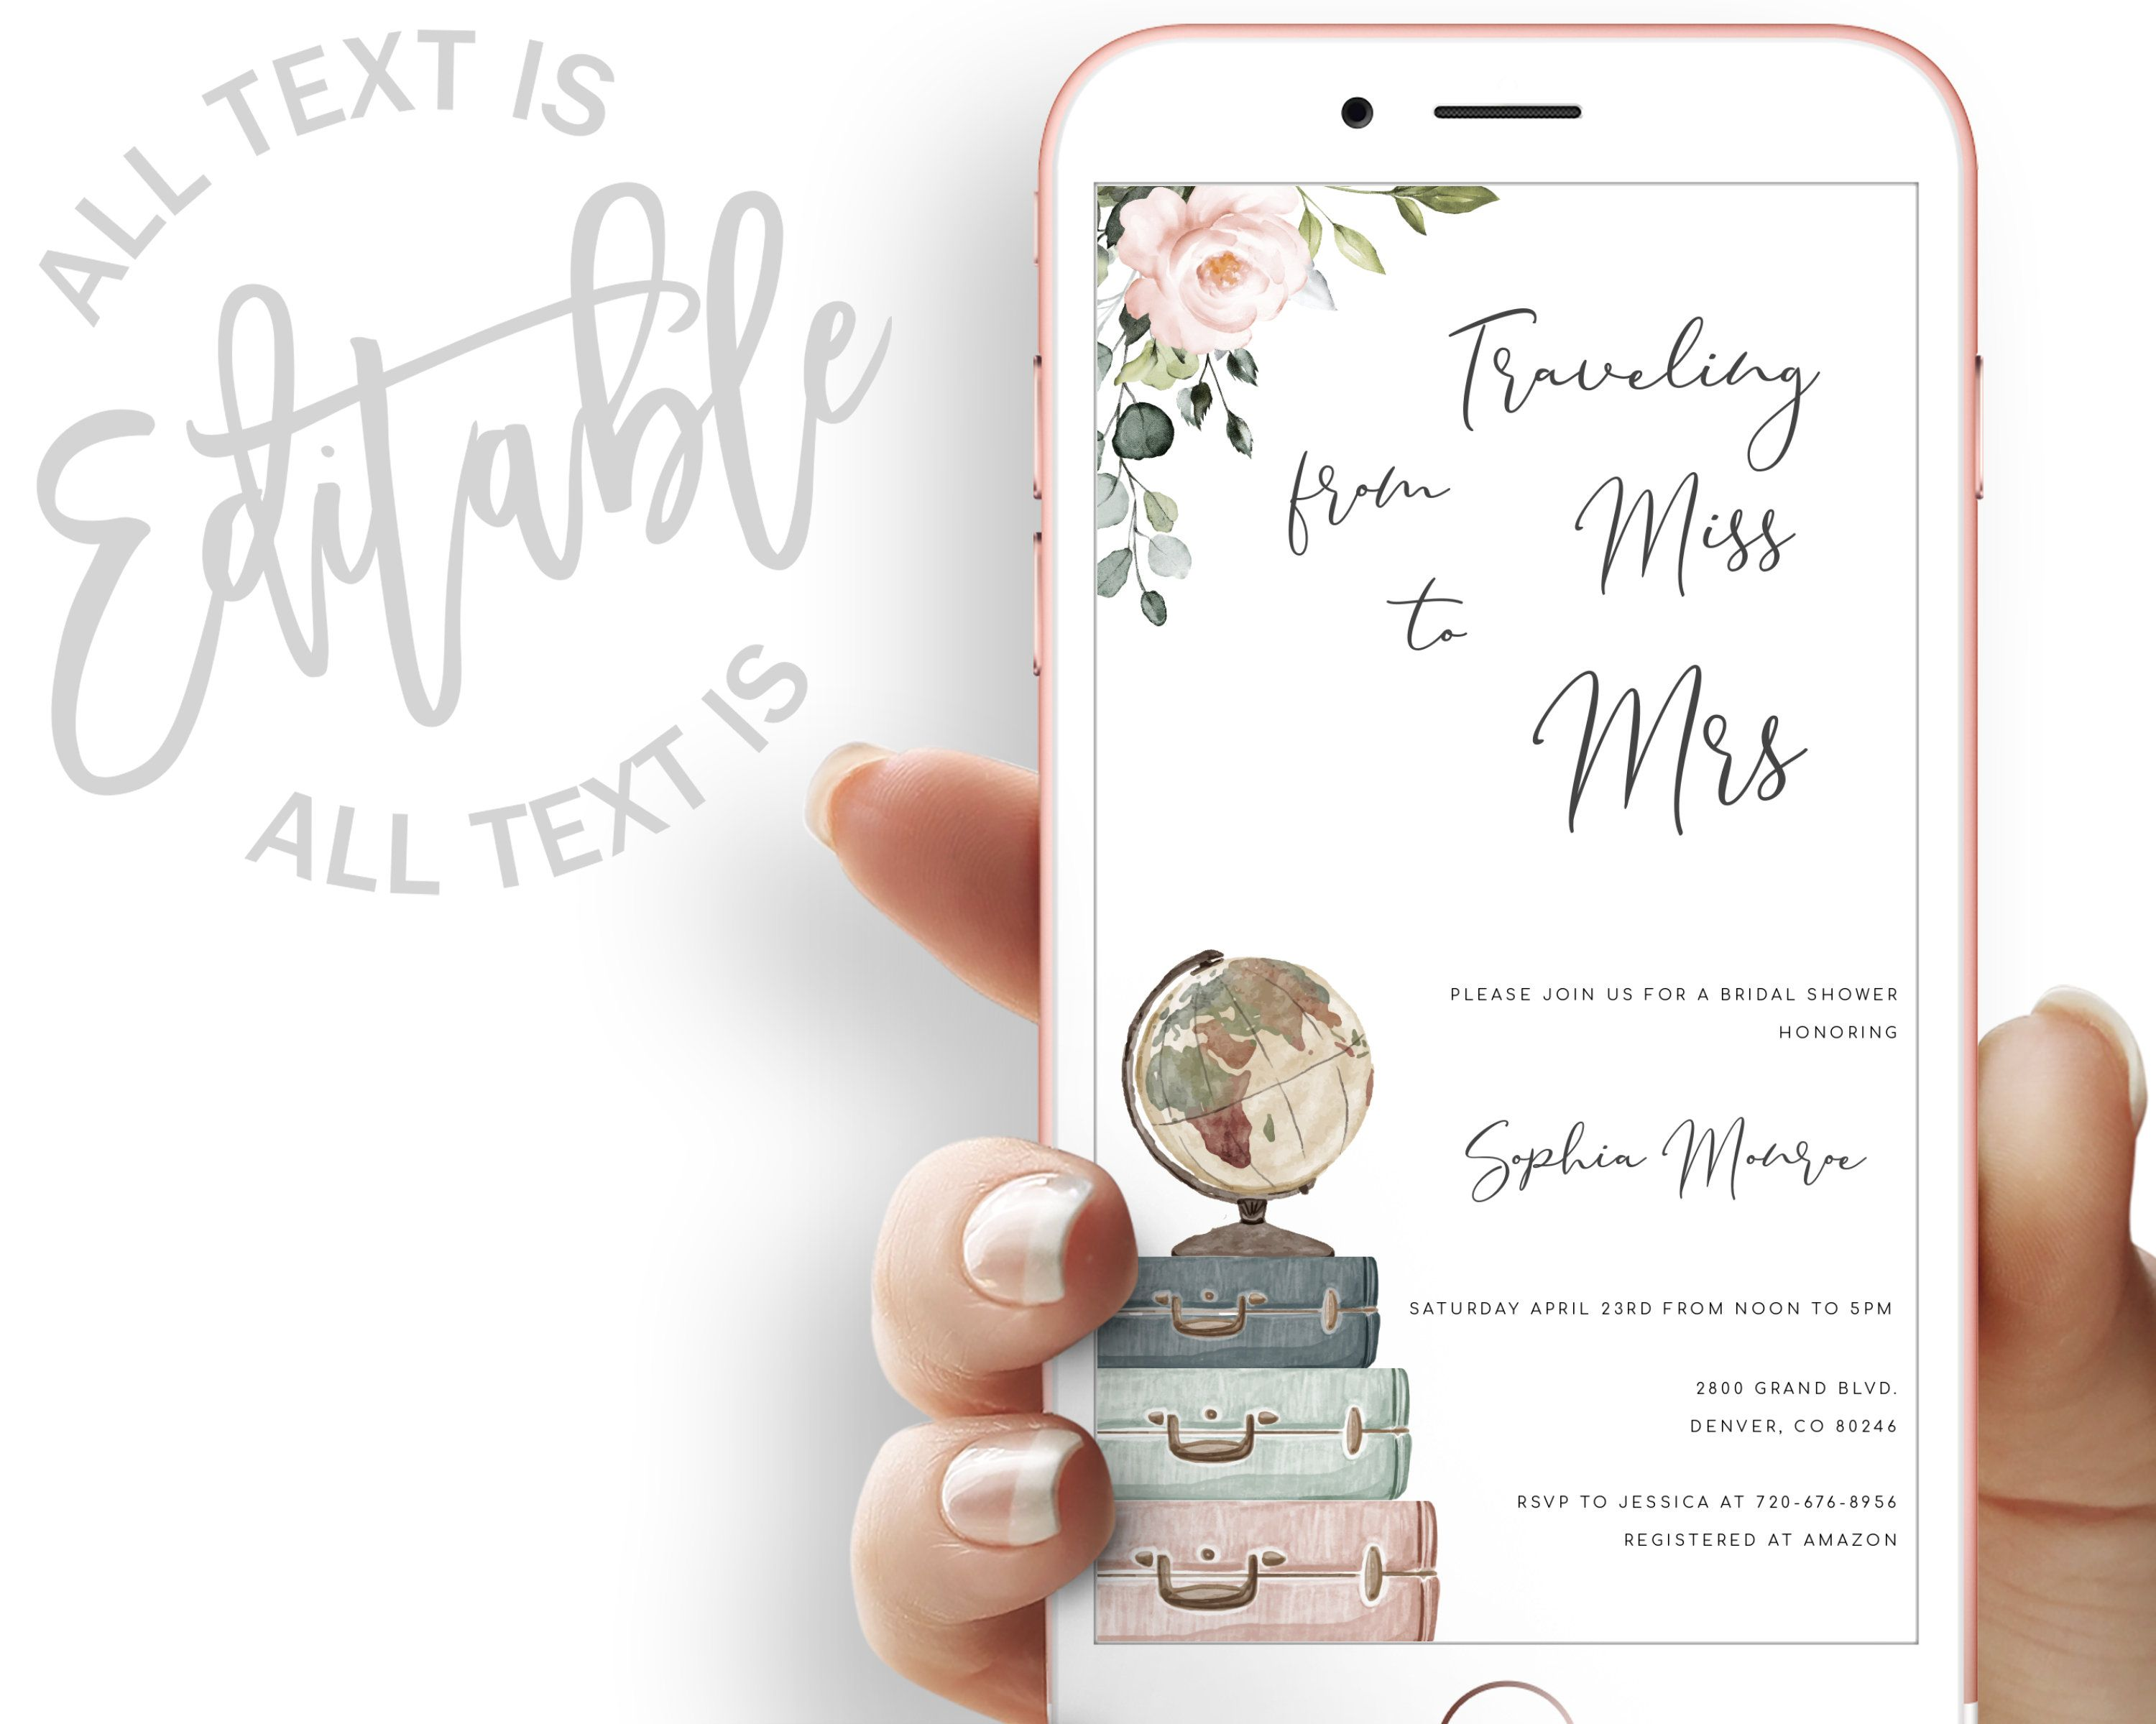 Traveling From Miss To Mrs Bridal Shower Evite Miss To Mrs Etsy In 2020 Electronic Invitations Floral Invitation Bridal Shower